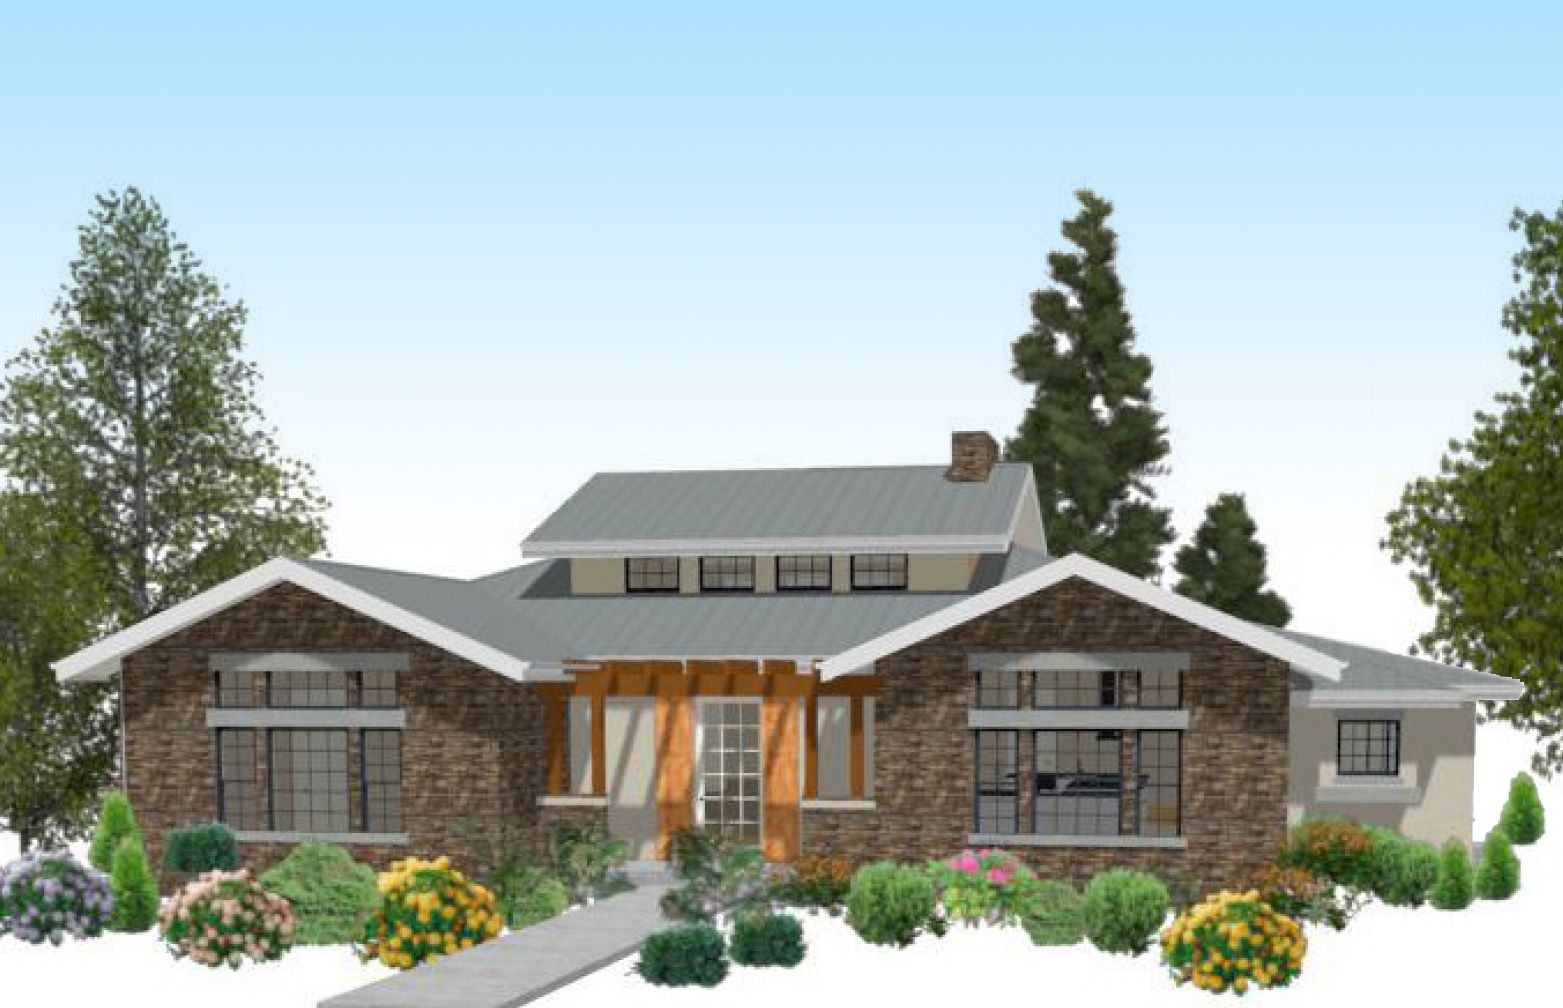 Plan 12527rs a texas style ranch ranch house plans for House plans texas style ranch